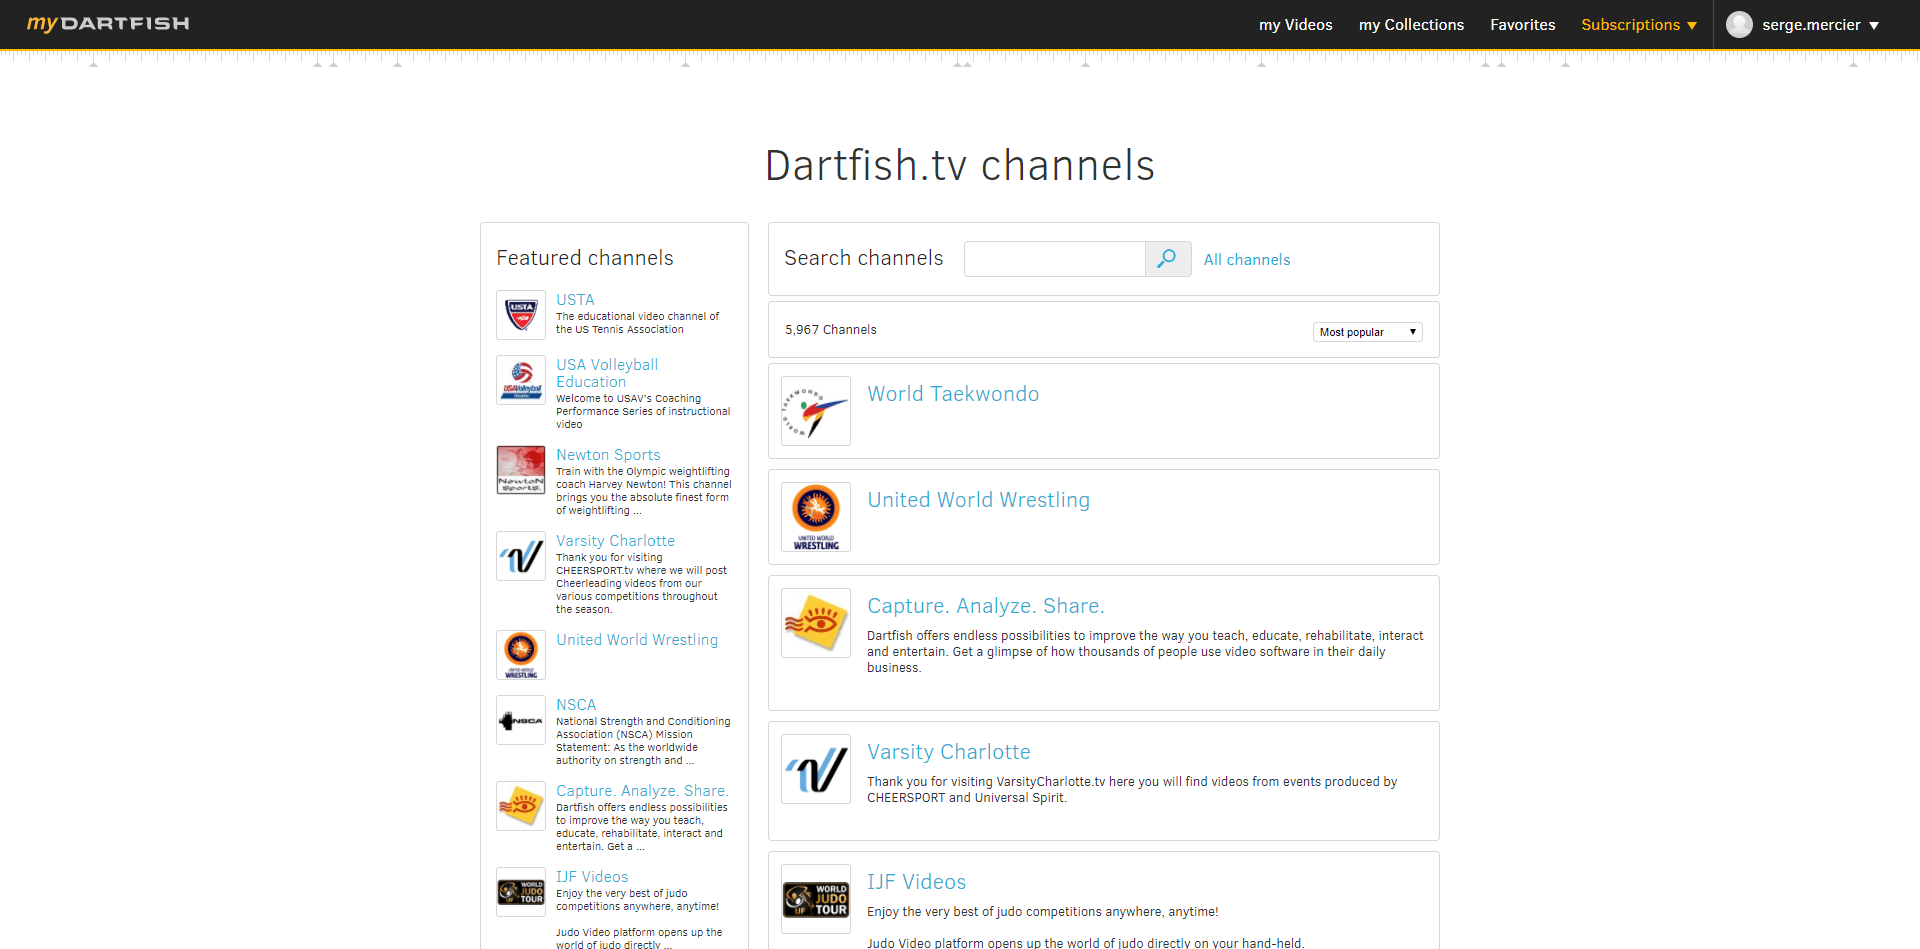 Dartfish.tv in organizations.